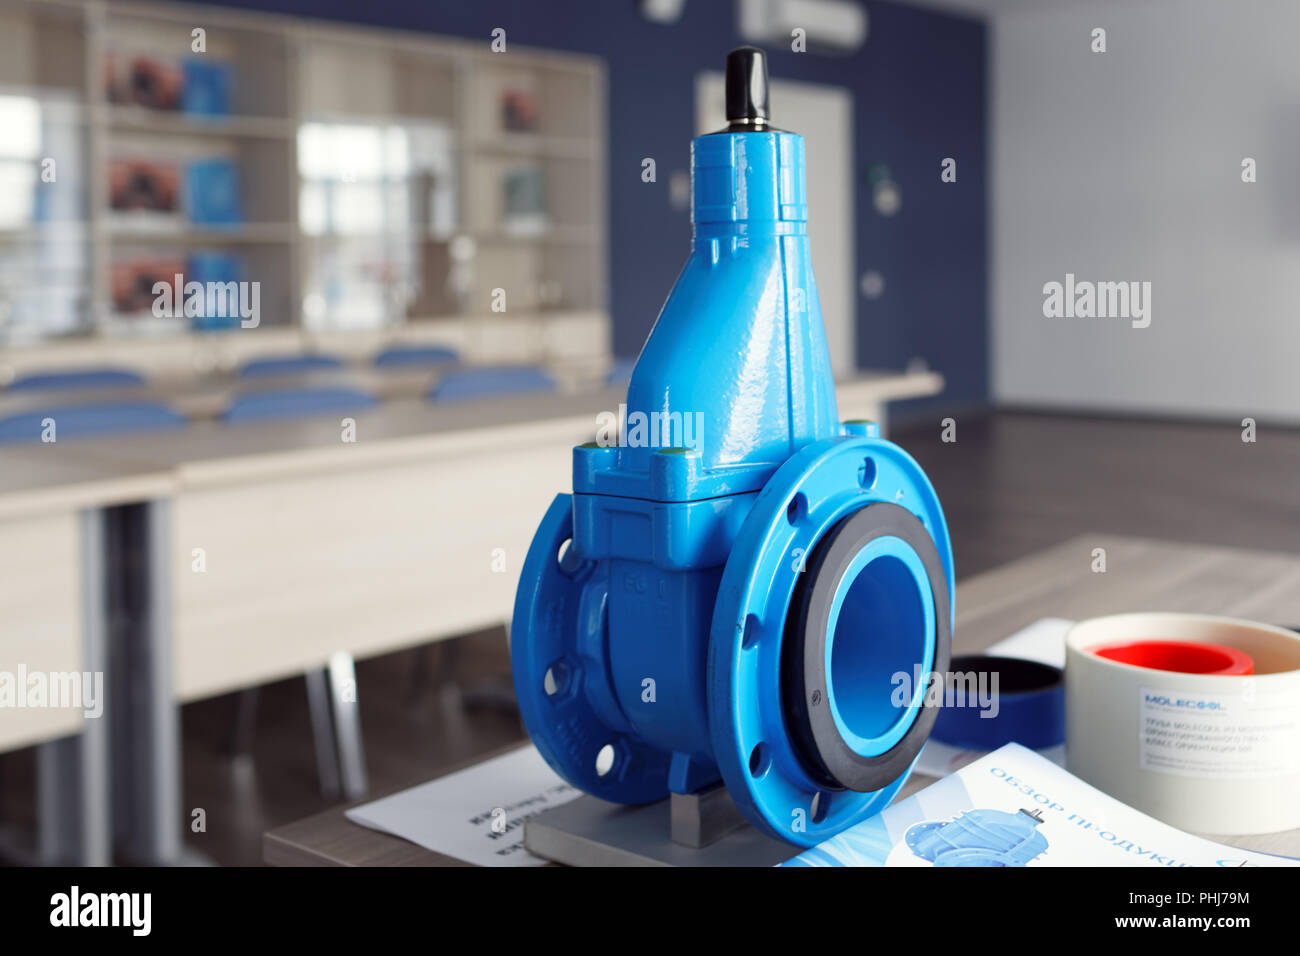 St. Petersburg, Russia - September 1, 2018: Flanged gate valve in the classroom of Water Academy in the day of starting the first academic year for fu - Stock Image